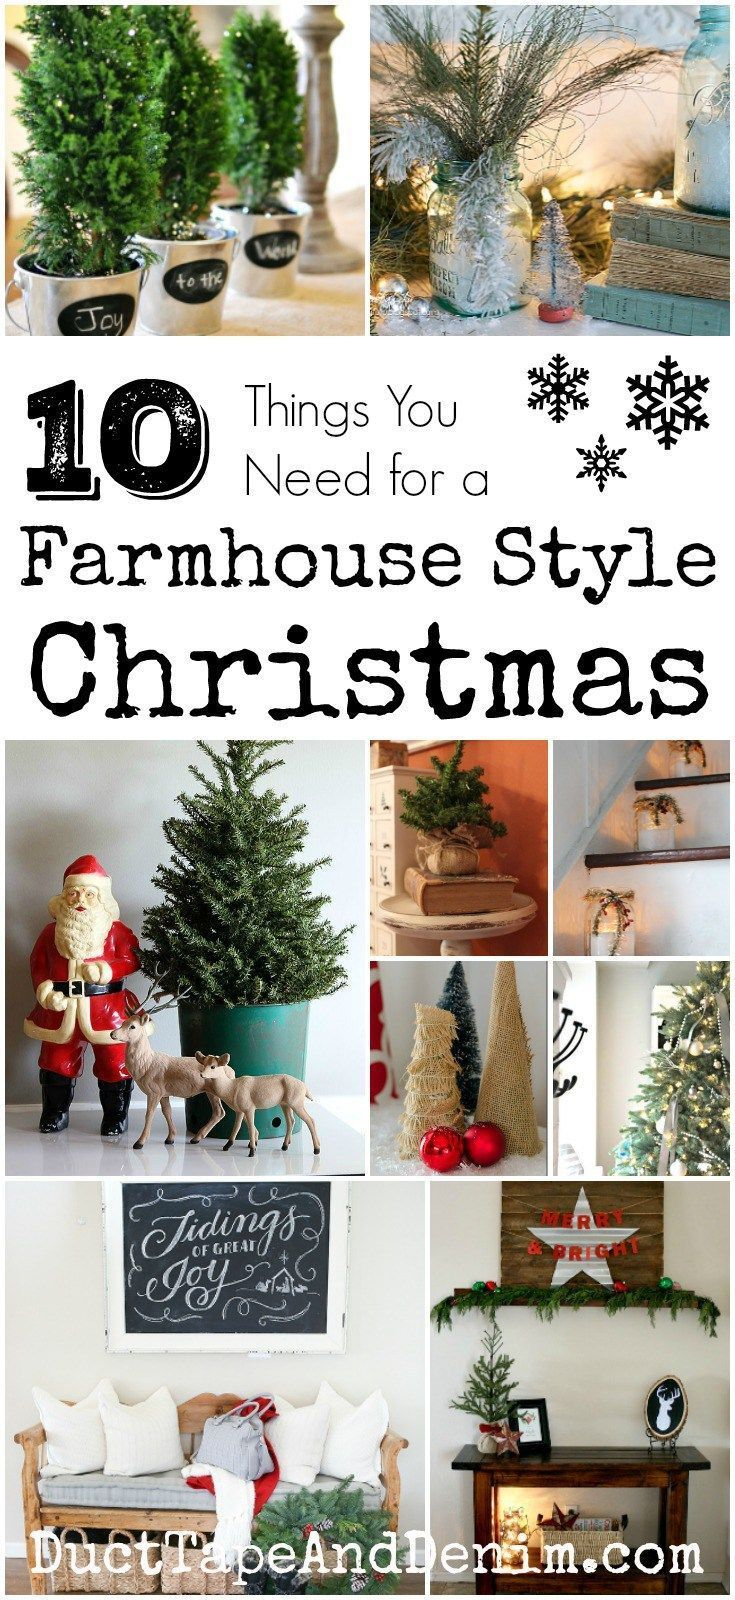 10 Simple Things You Need For A Farmhouse Christmas Christmas Holidays Christmas Decorations Farmhouse Style Christmas